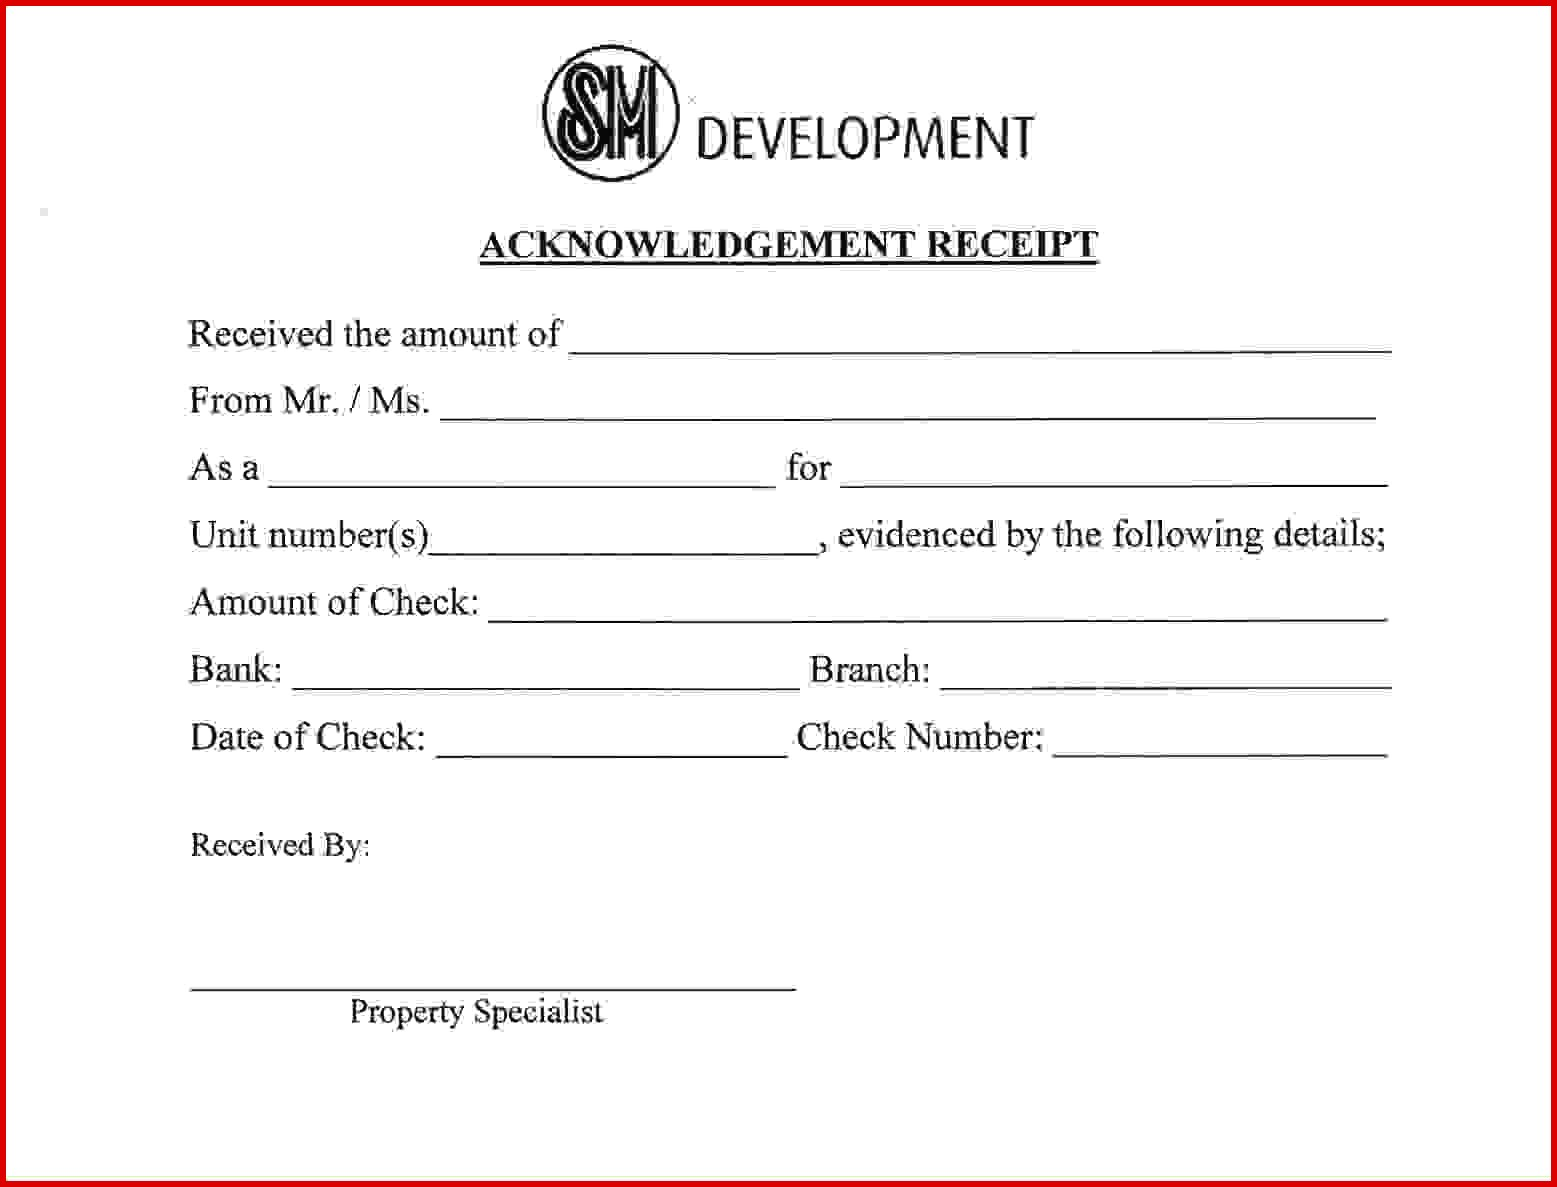 Acknowledge Form Sample Lovely Acknowledgement Form Template Virtren